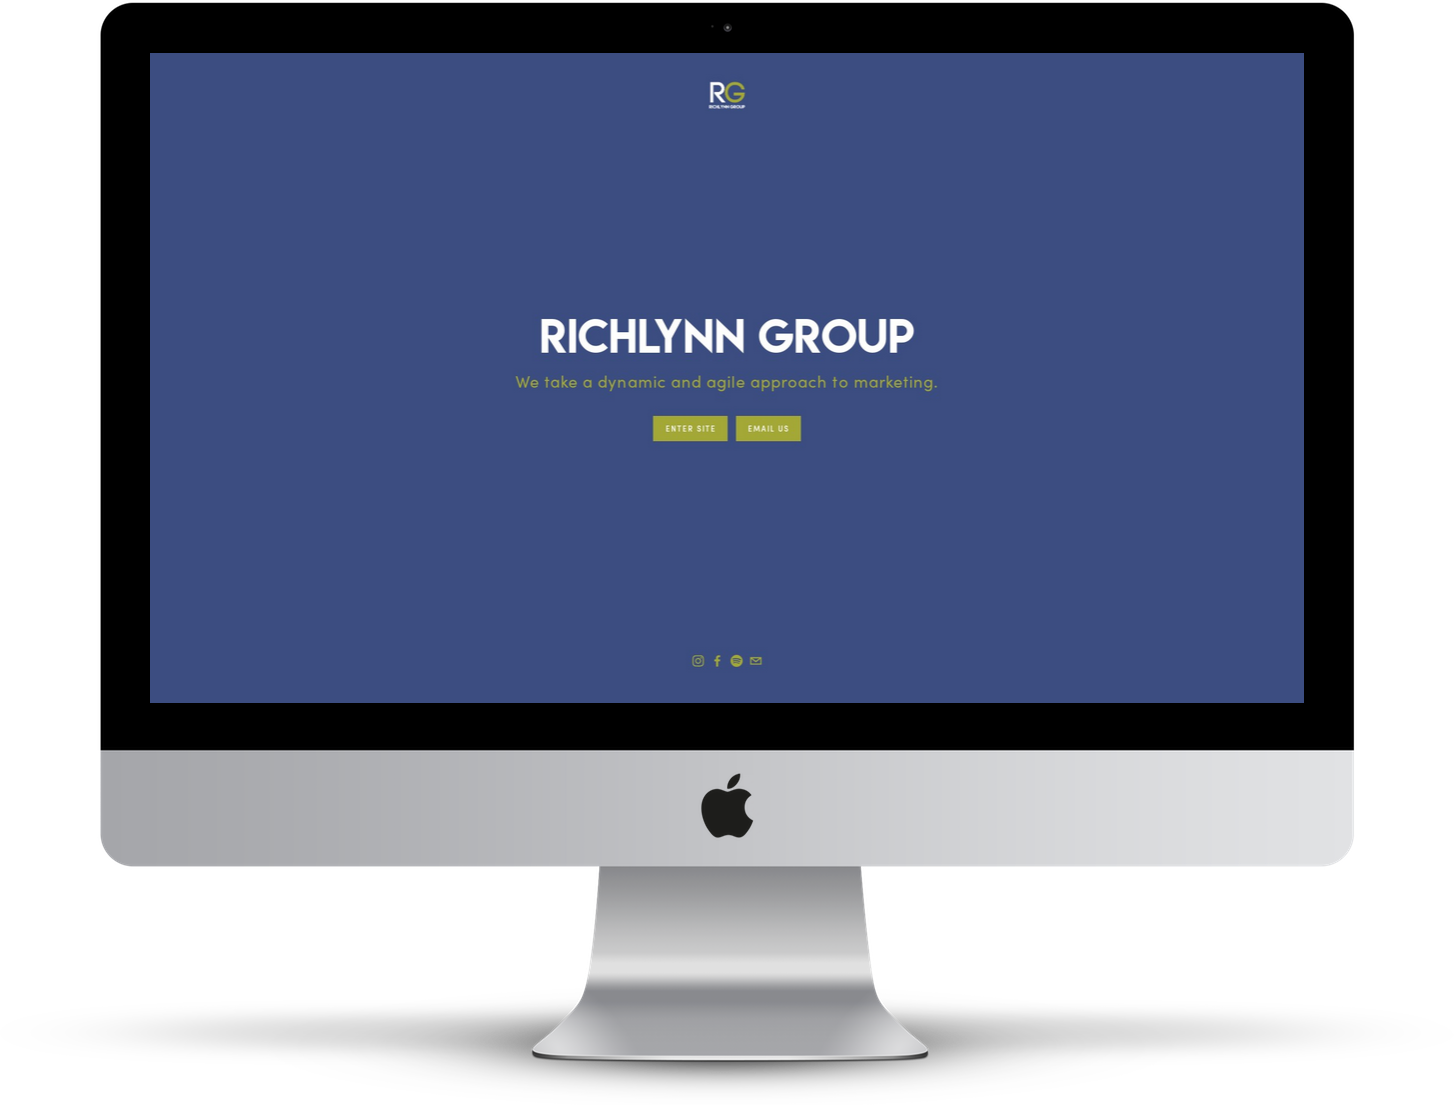 Richlynn Group